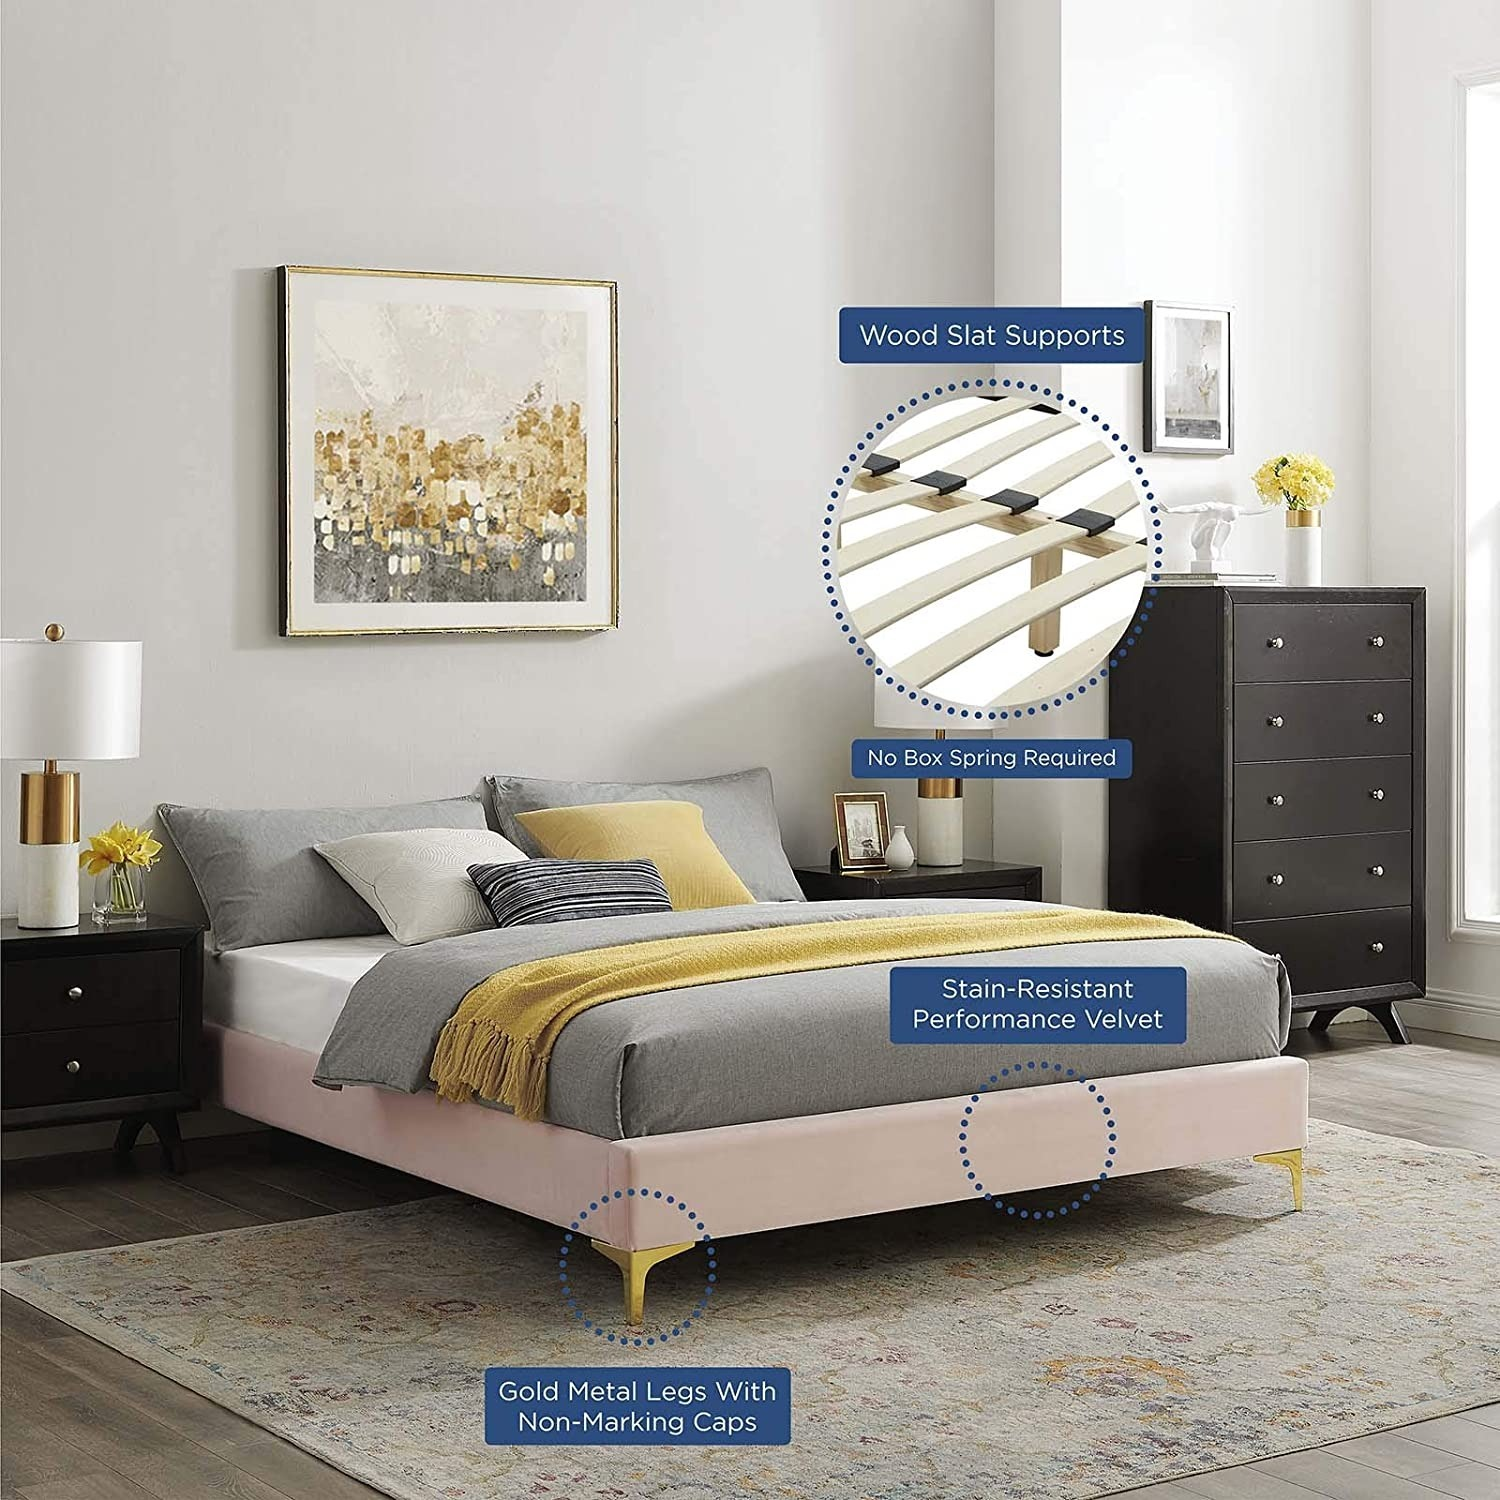 Twin Bed Frame In Pink Performance Velvet - image-5